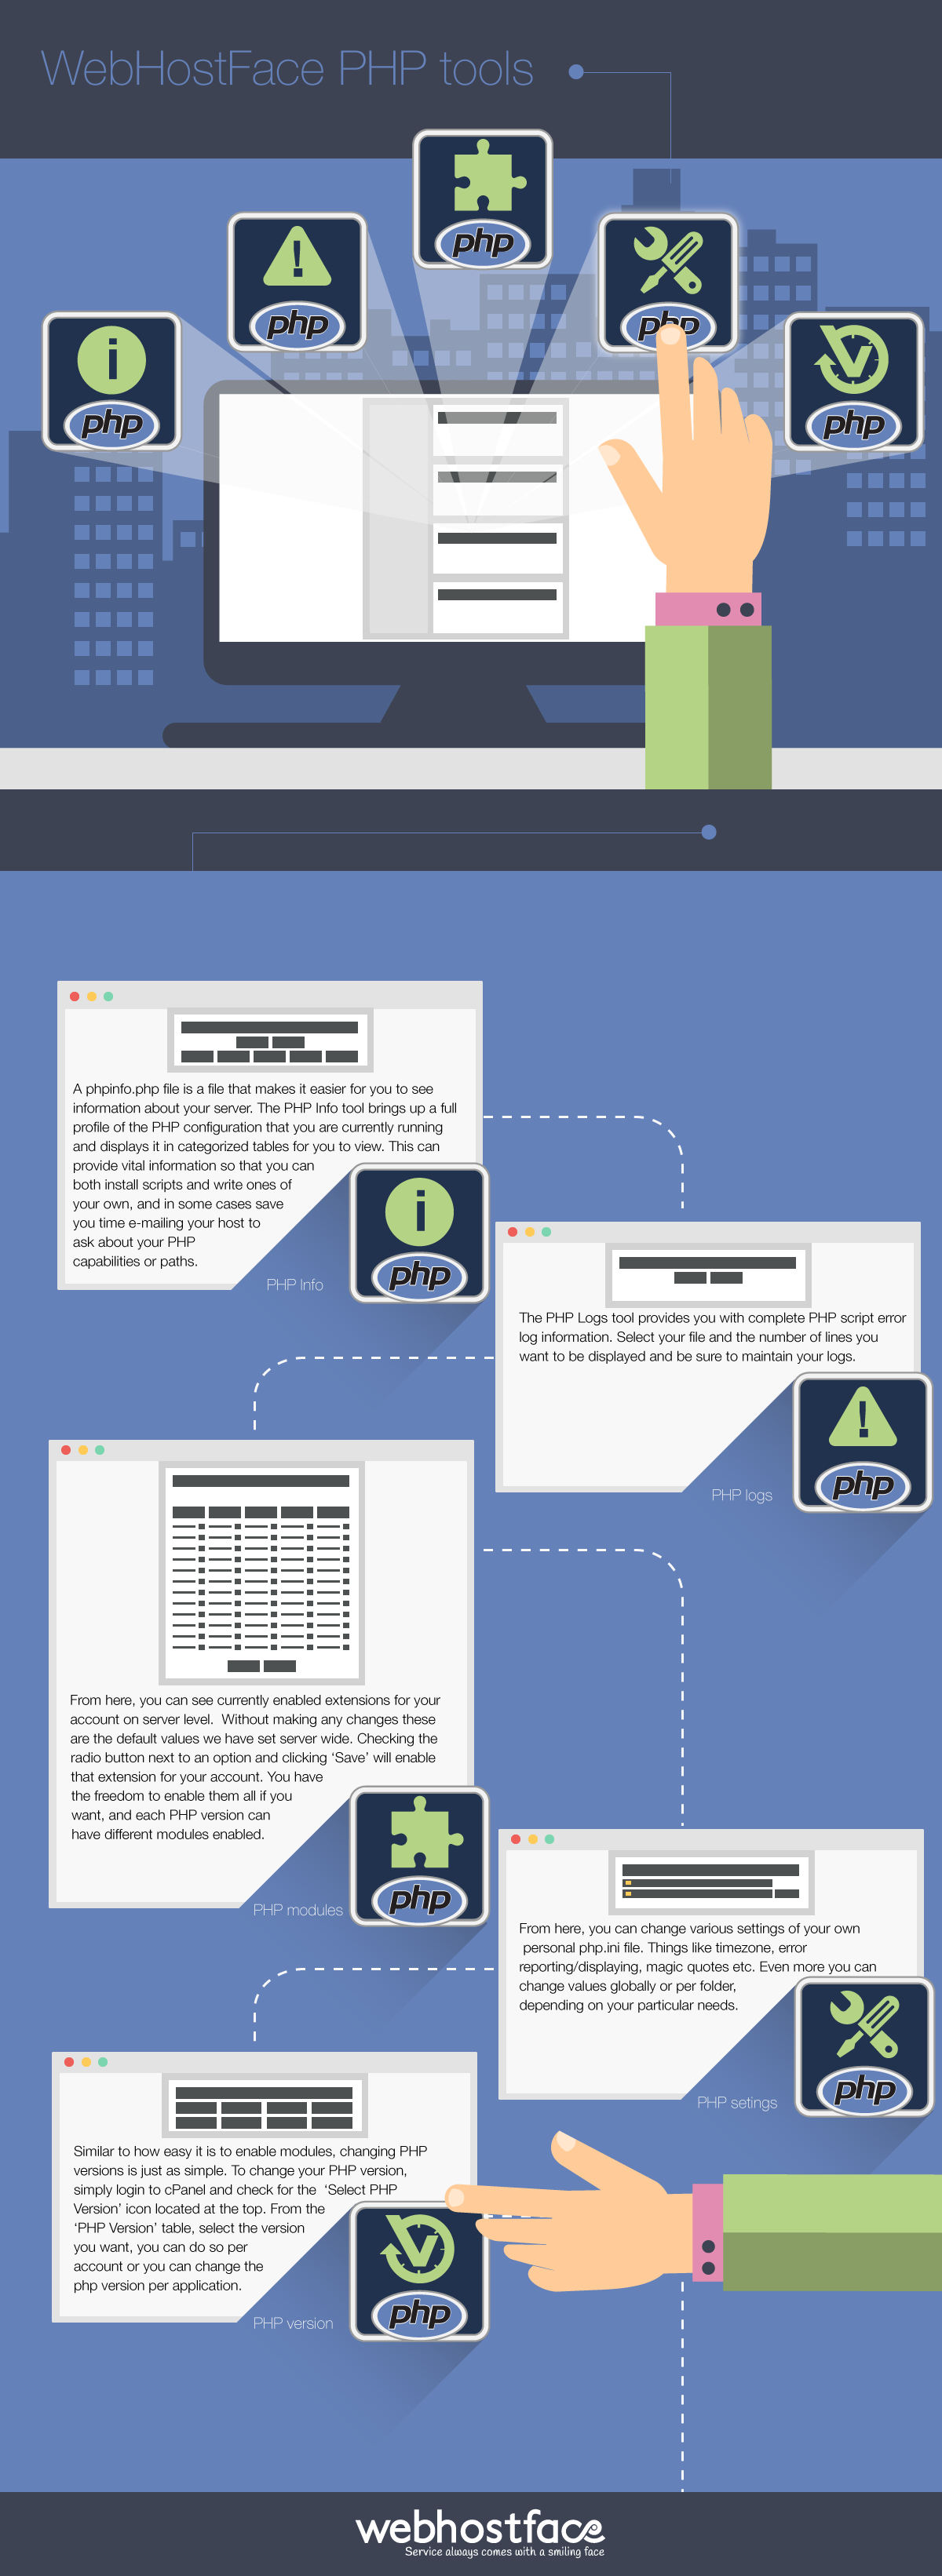 WebHostFace PHP Tools Infographic